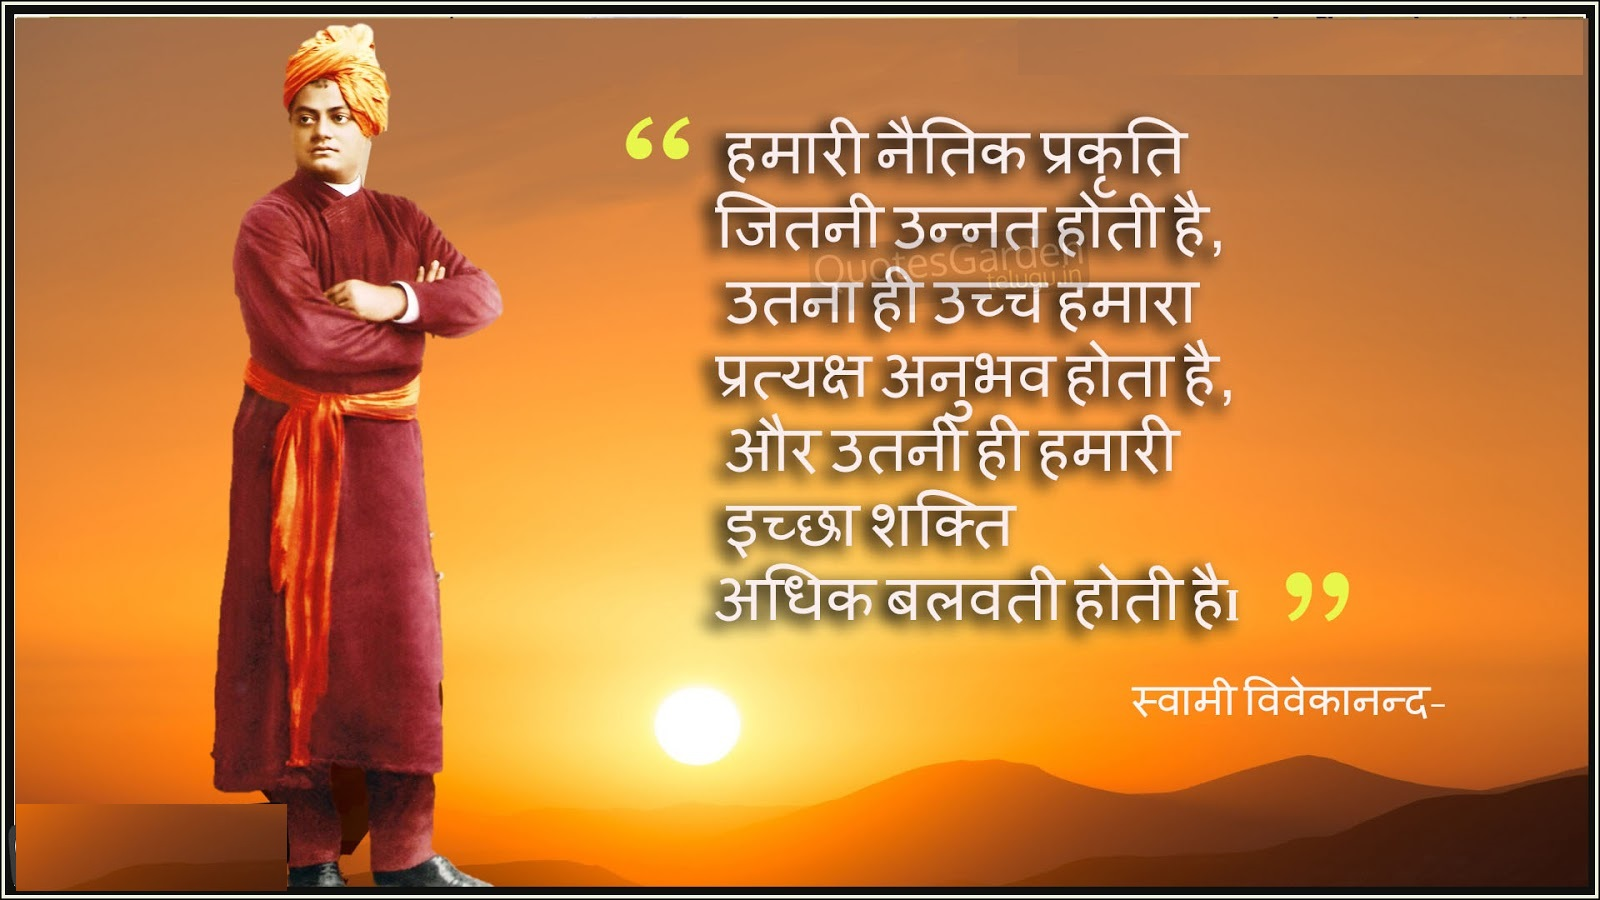 short essay on swami vivekananda swami vivekananda picture quotes  swami vivekananda quotes swamy vivekananda inspirational quotes in hind short essay on patriotism